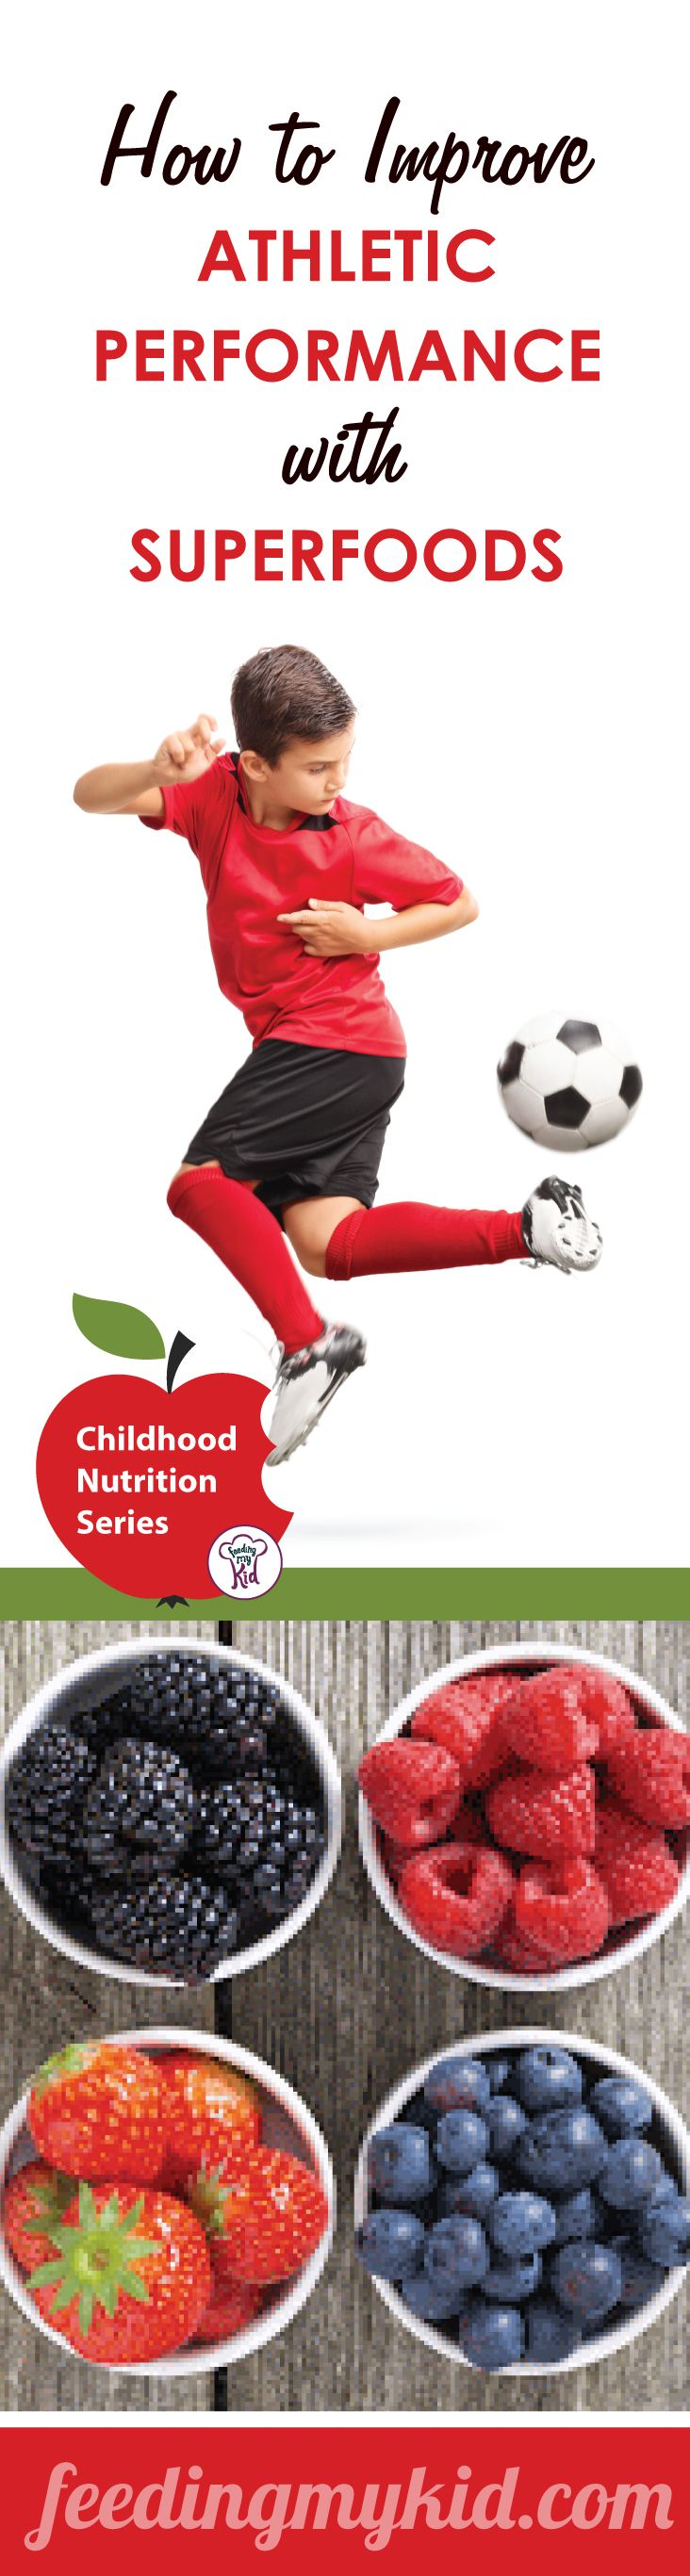 Superfoods for Young Athletes to Improve Performance #athletefood